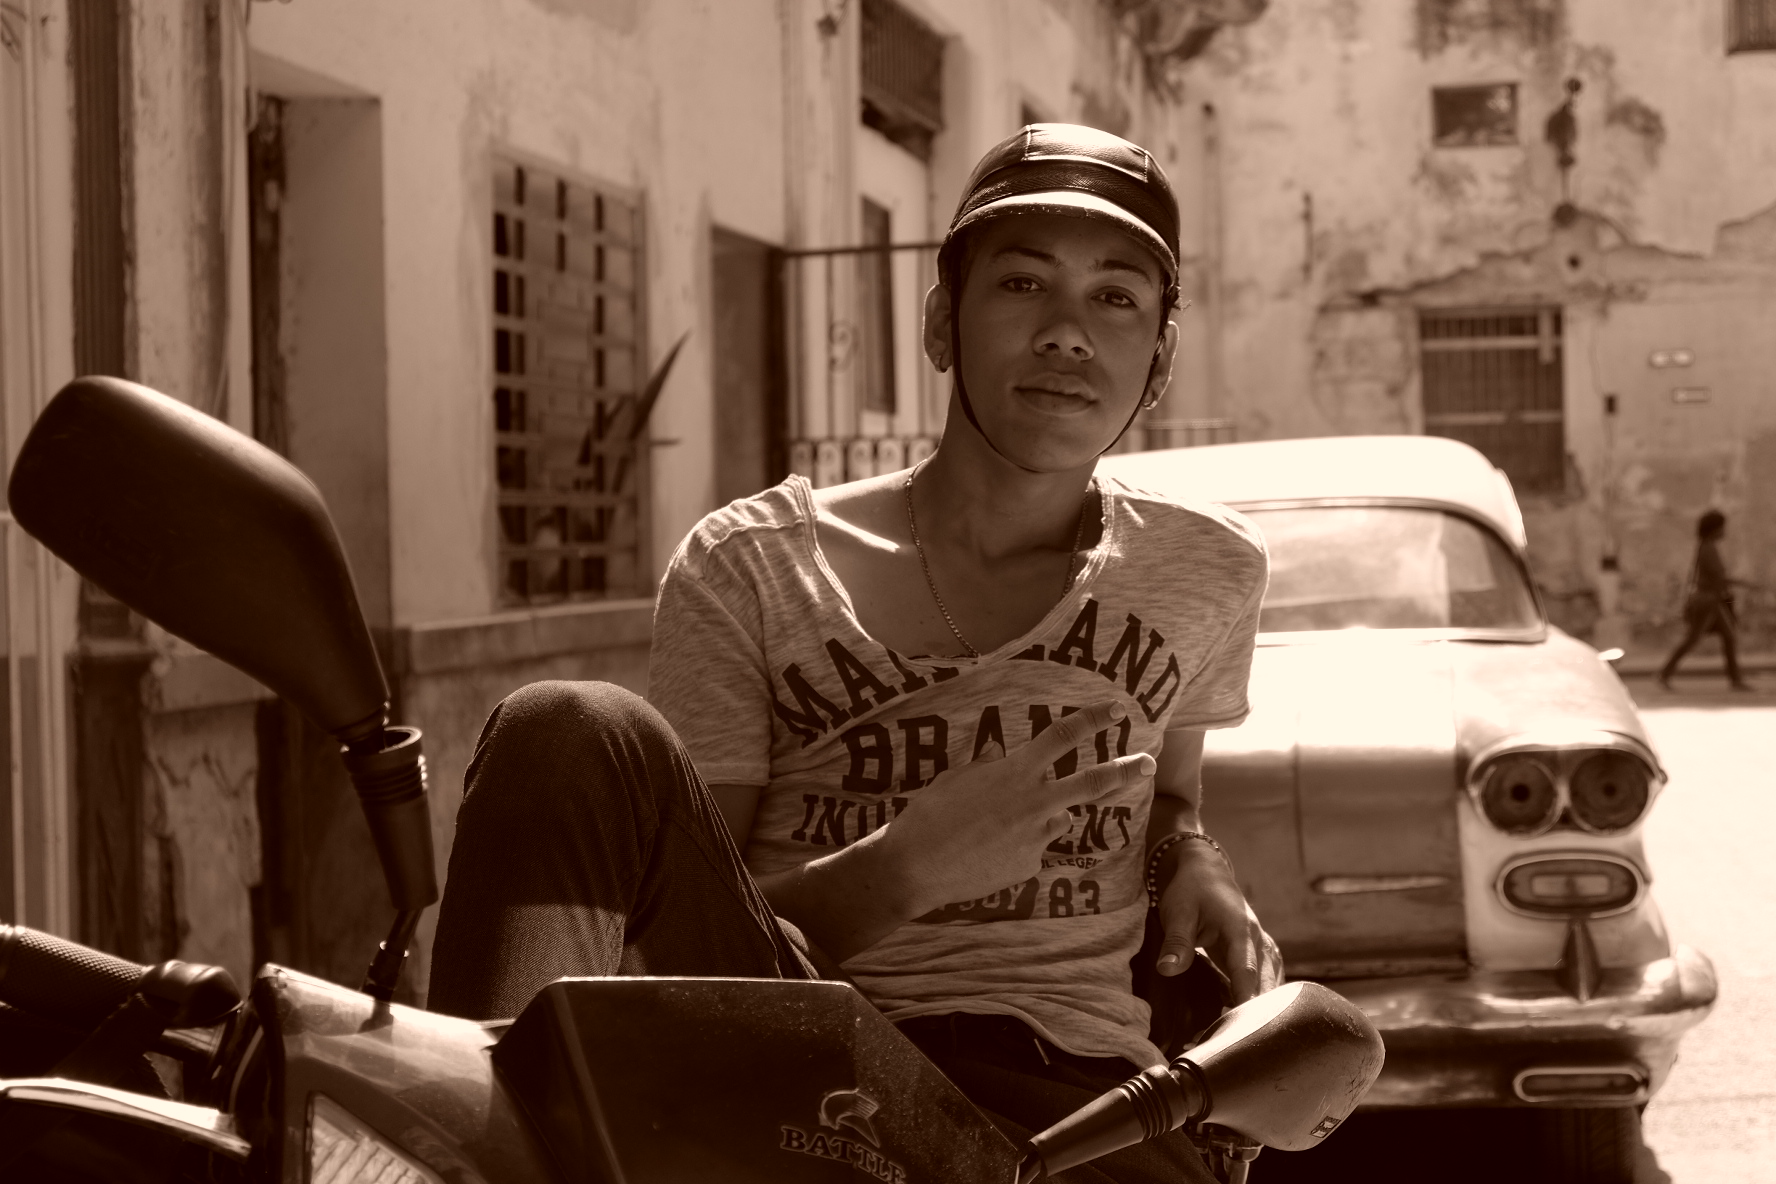 Guy on motorcycle in Old Havana